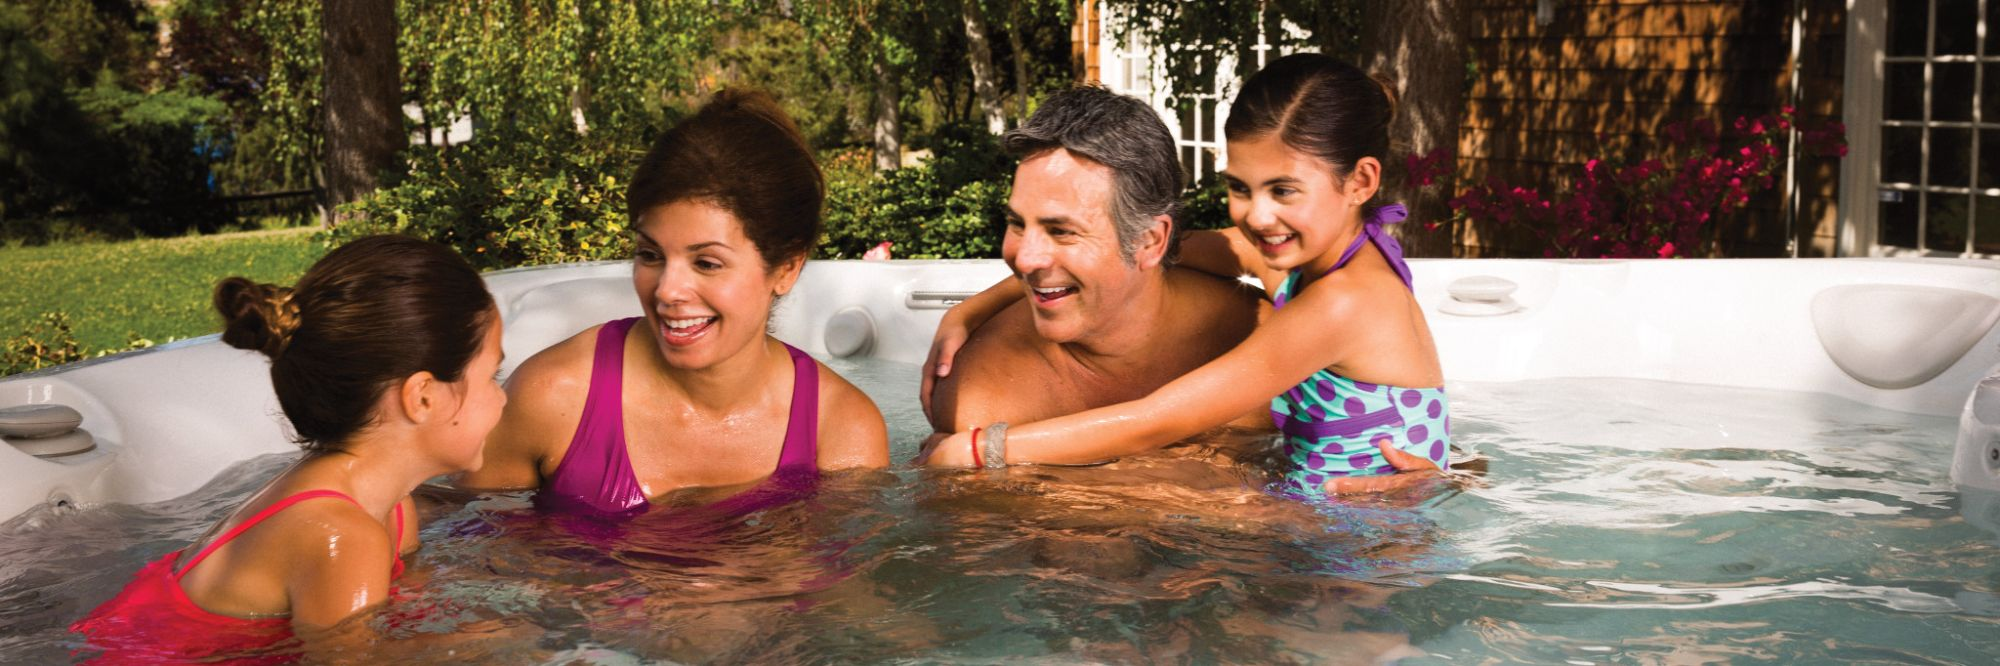 Family Enjoying Hot Tub from Landi Pools and Games